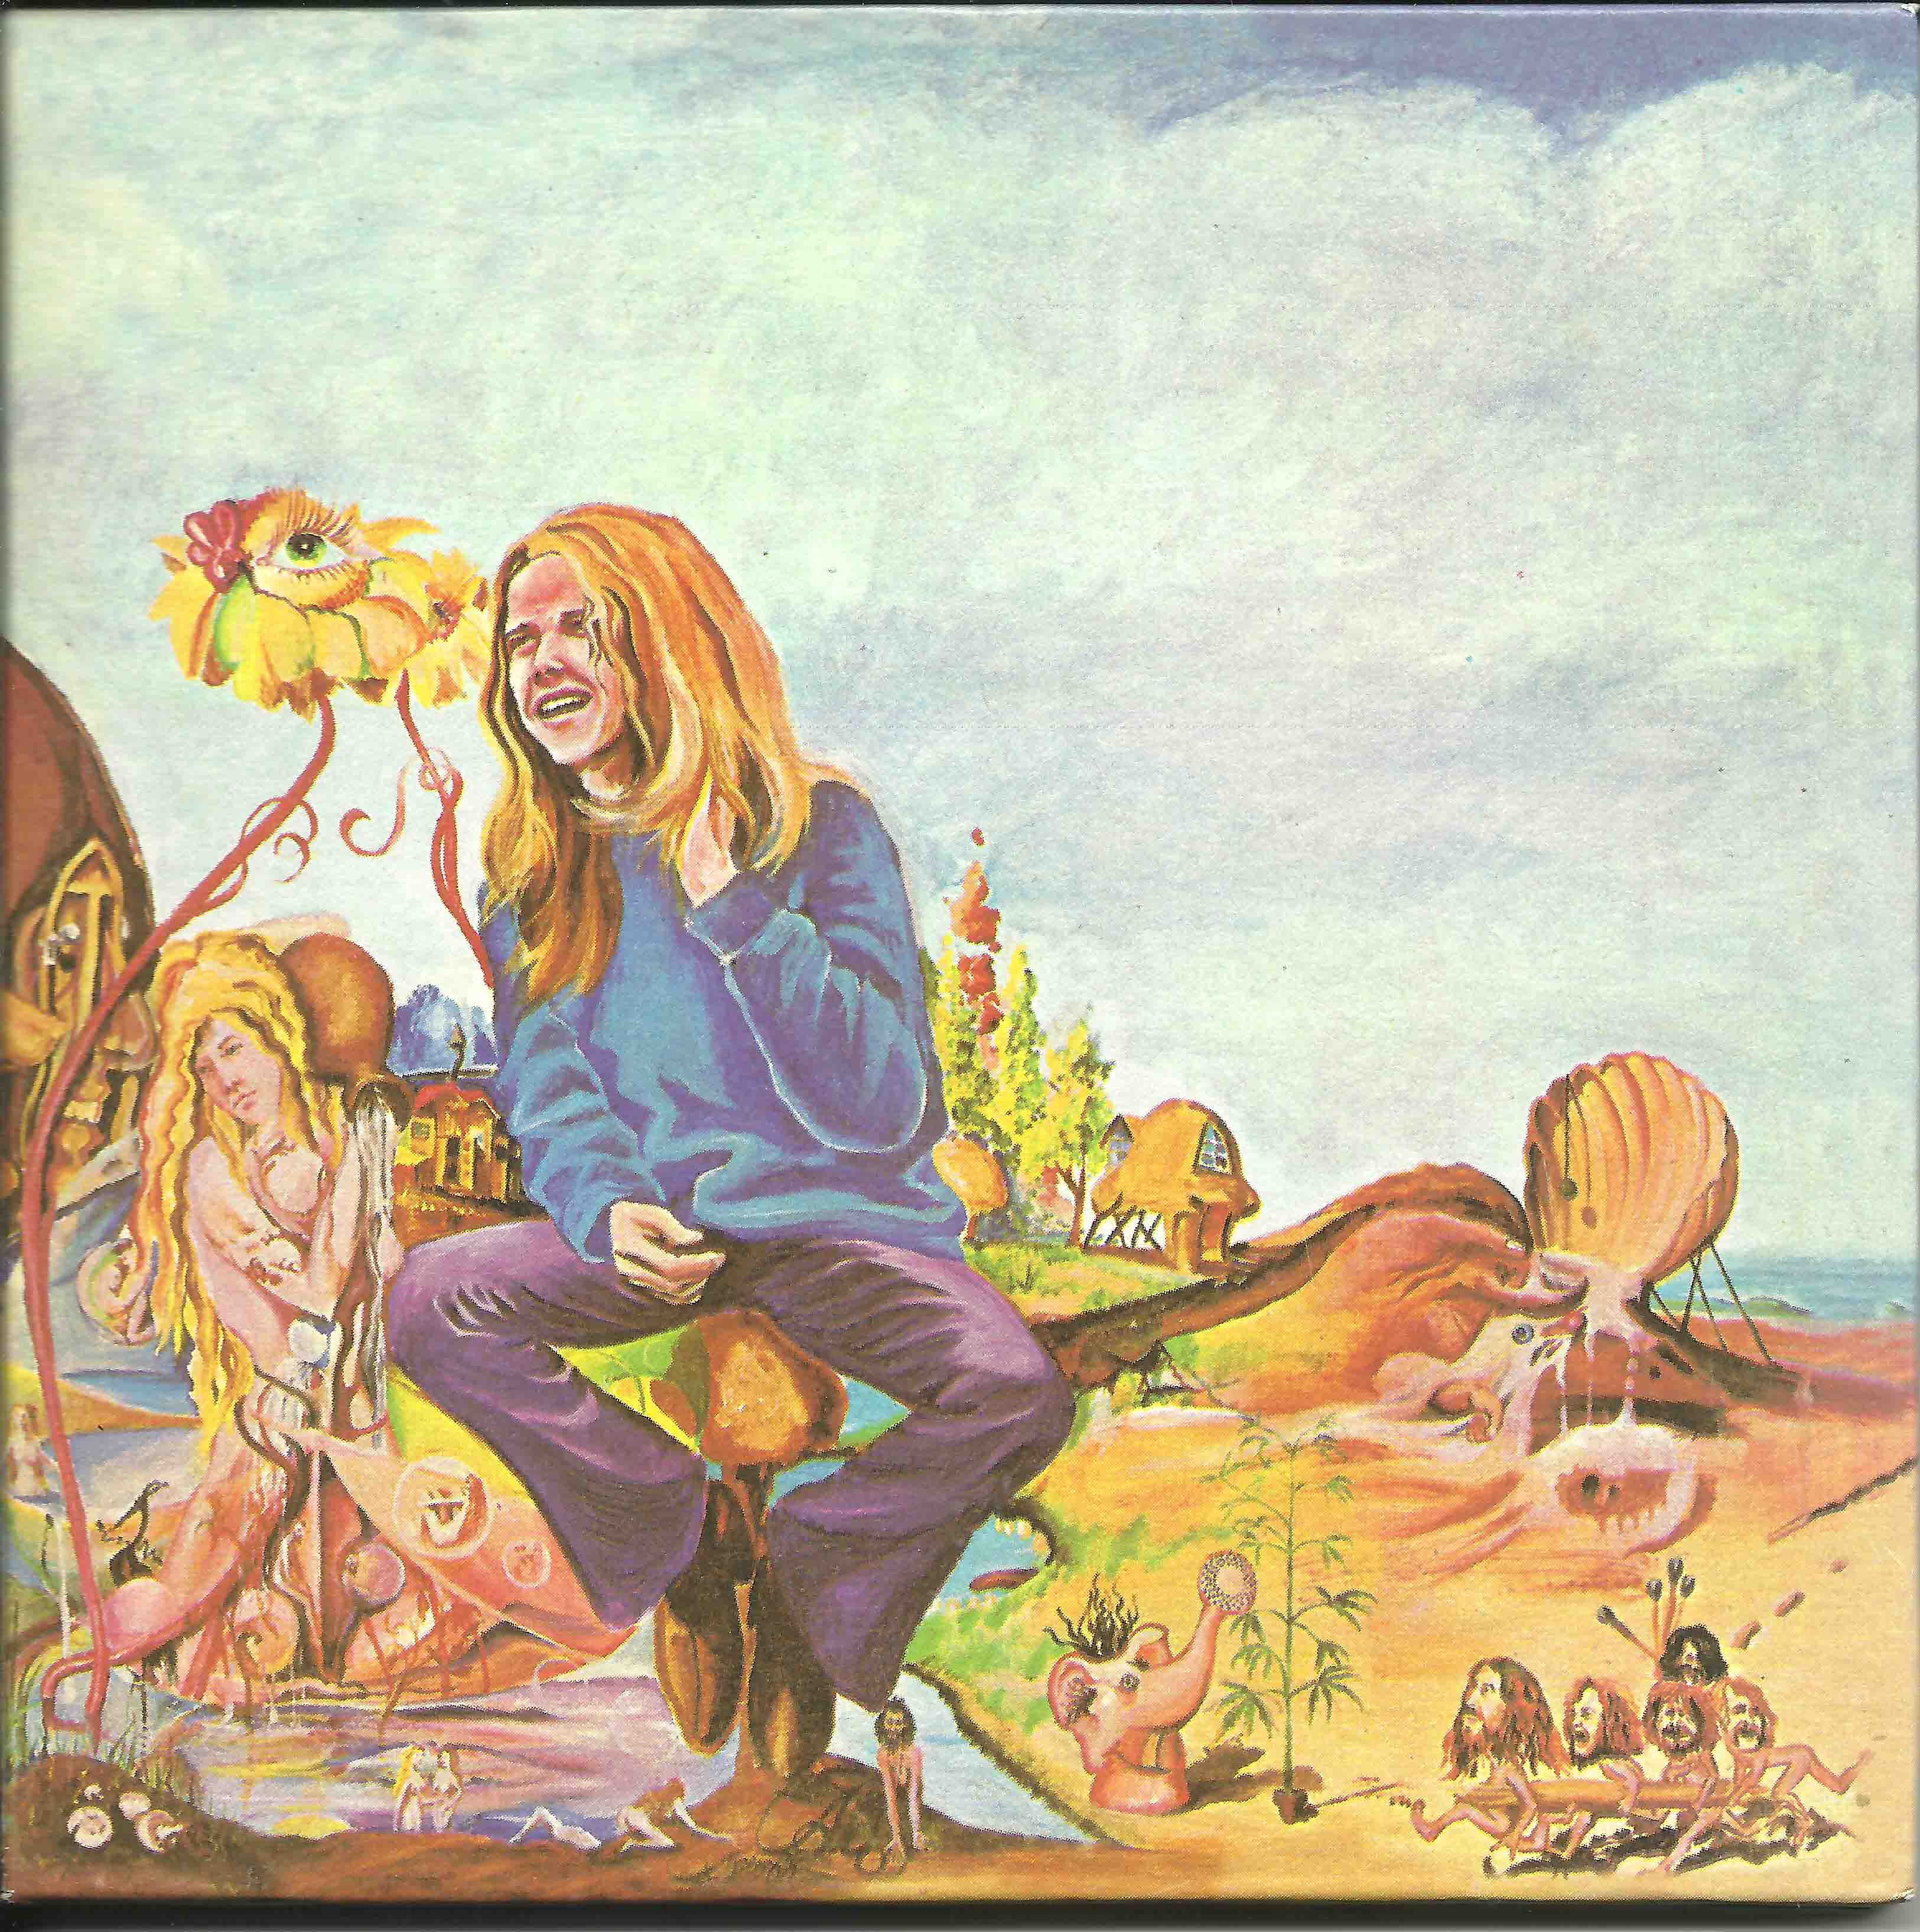 Blue Cheer - Outside Inside - Resissue from 2003